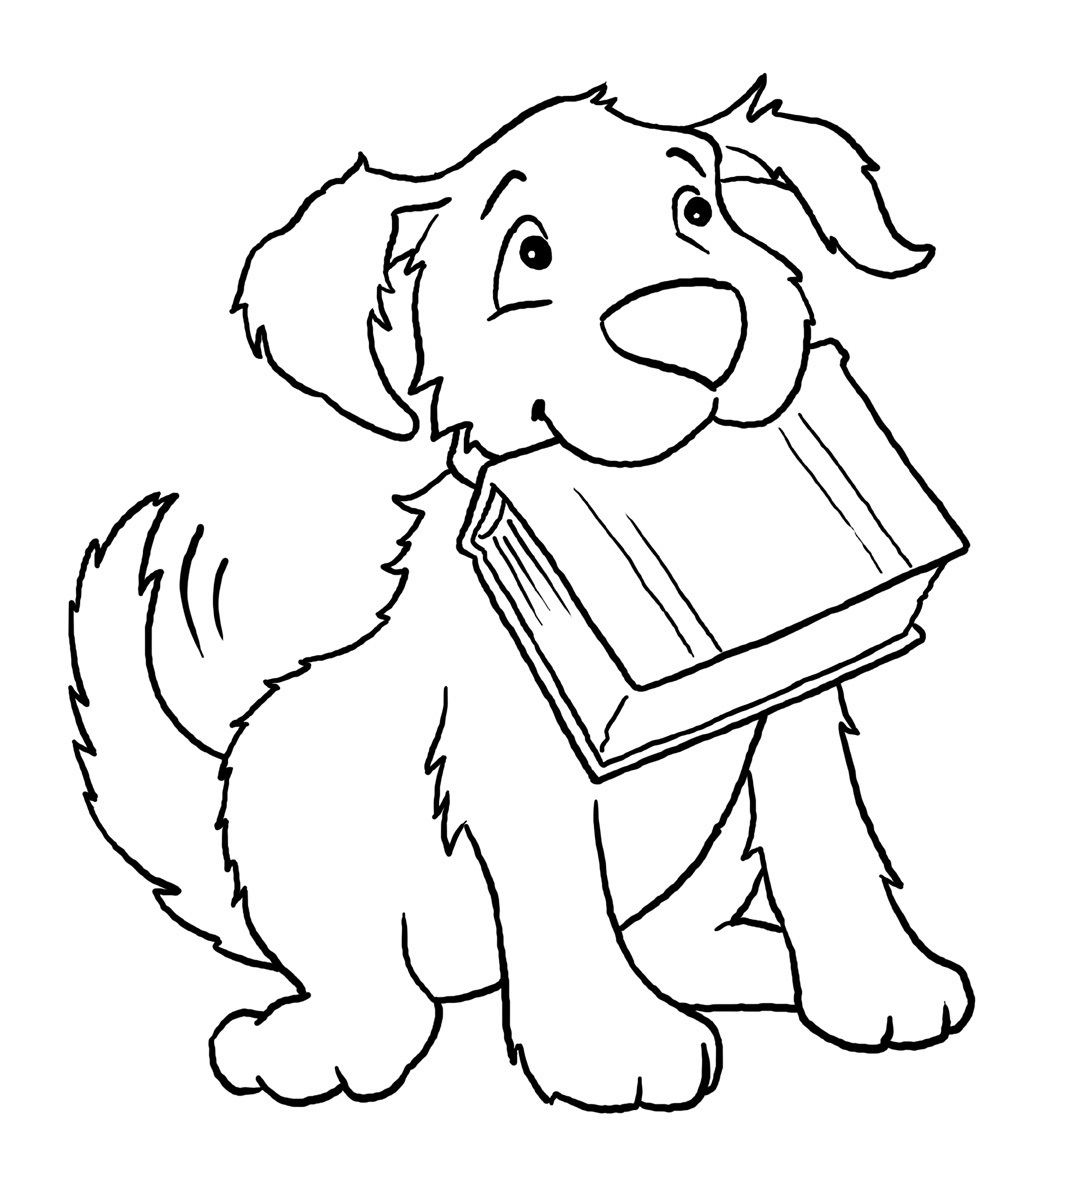 dog coloring pictures printable dog coloring pages 2018 dr odd coloring dog printable pictures